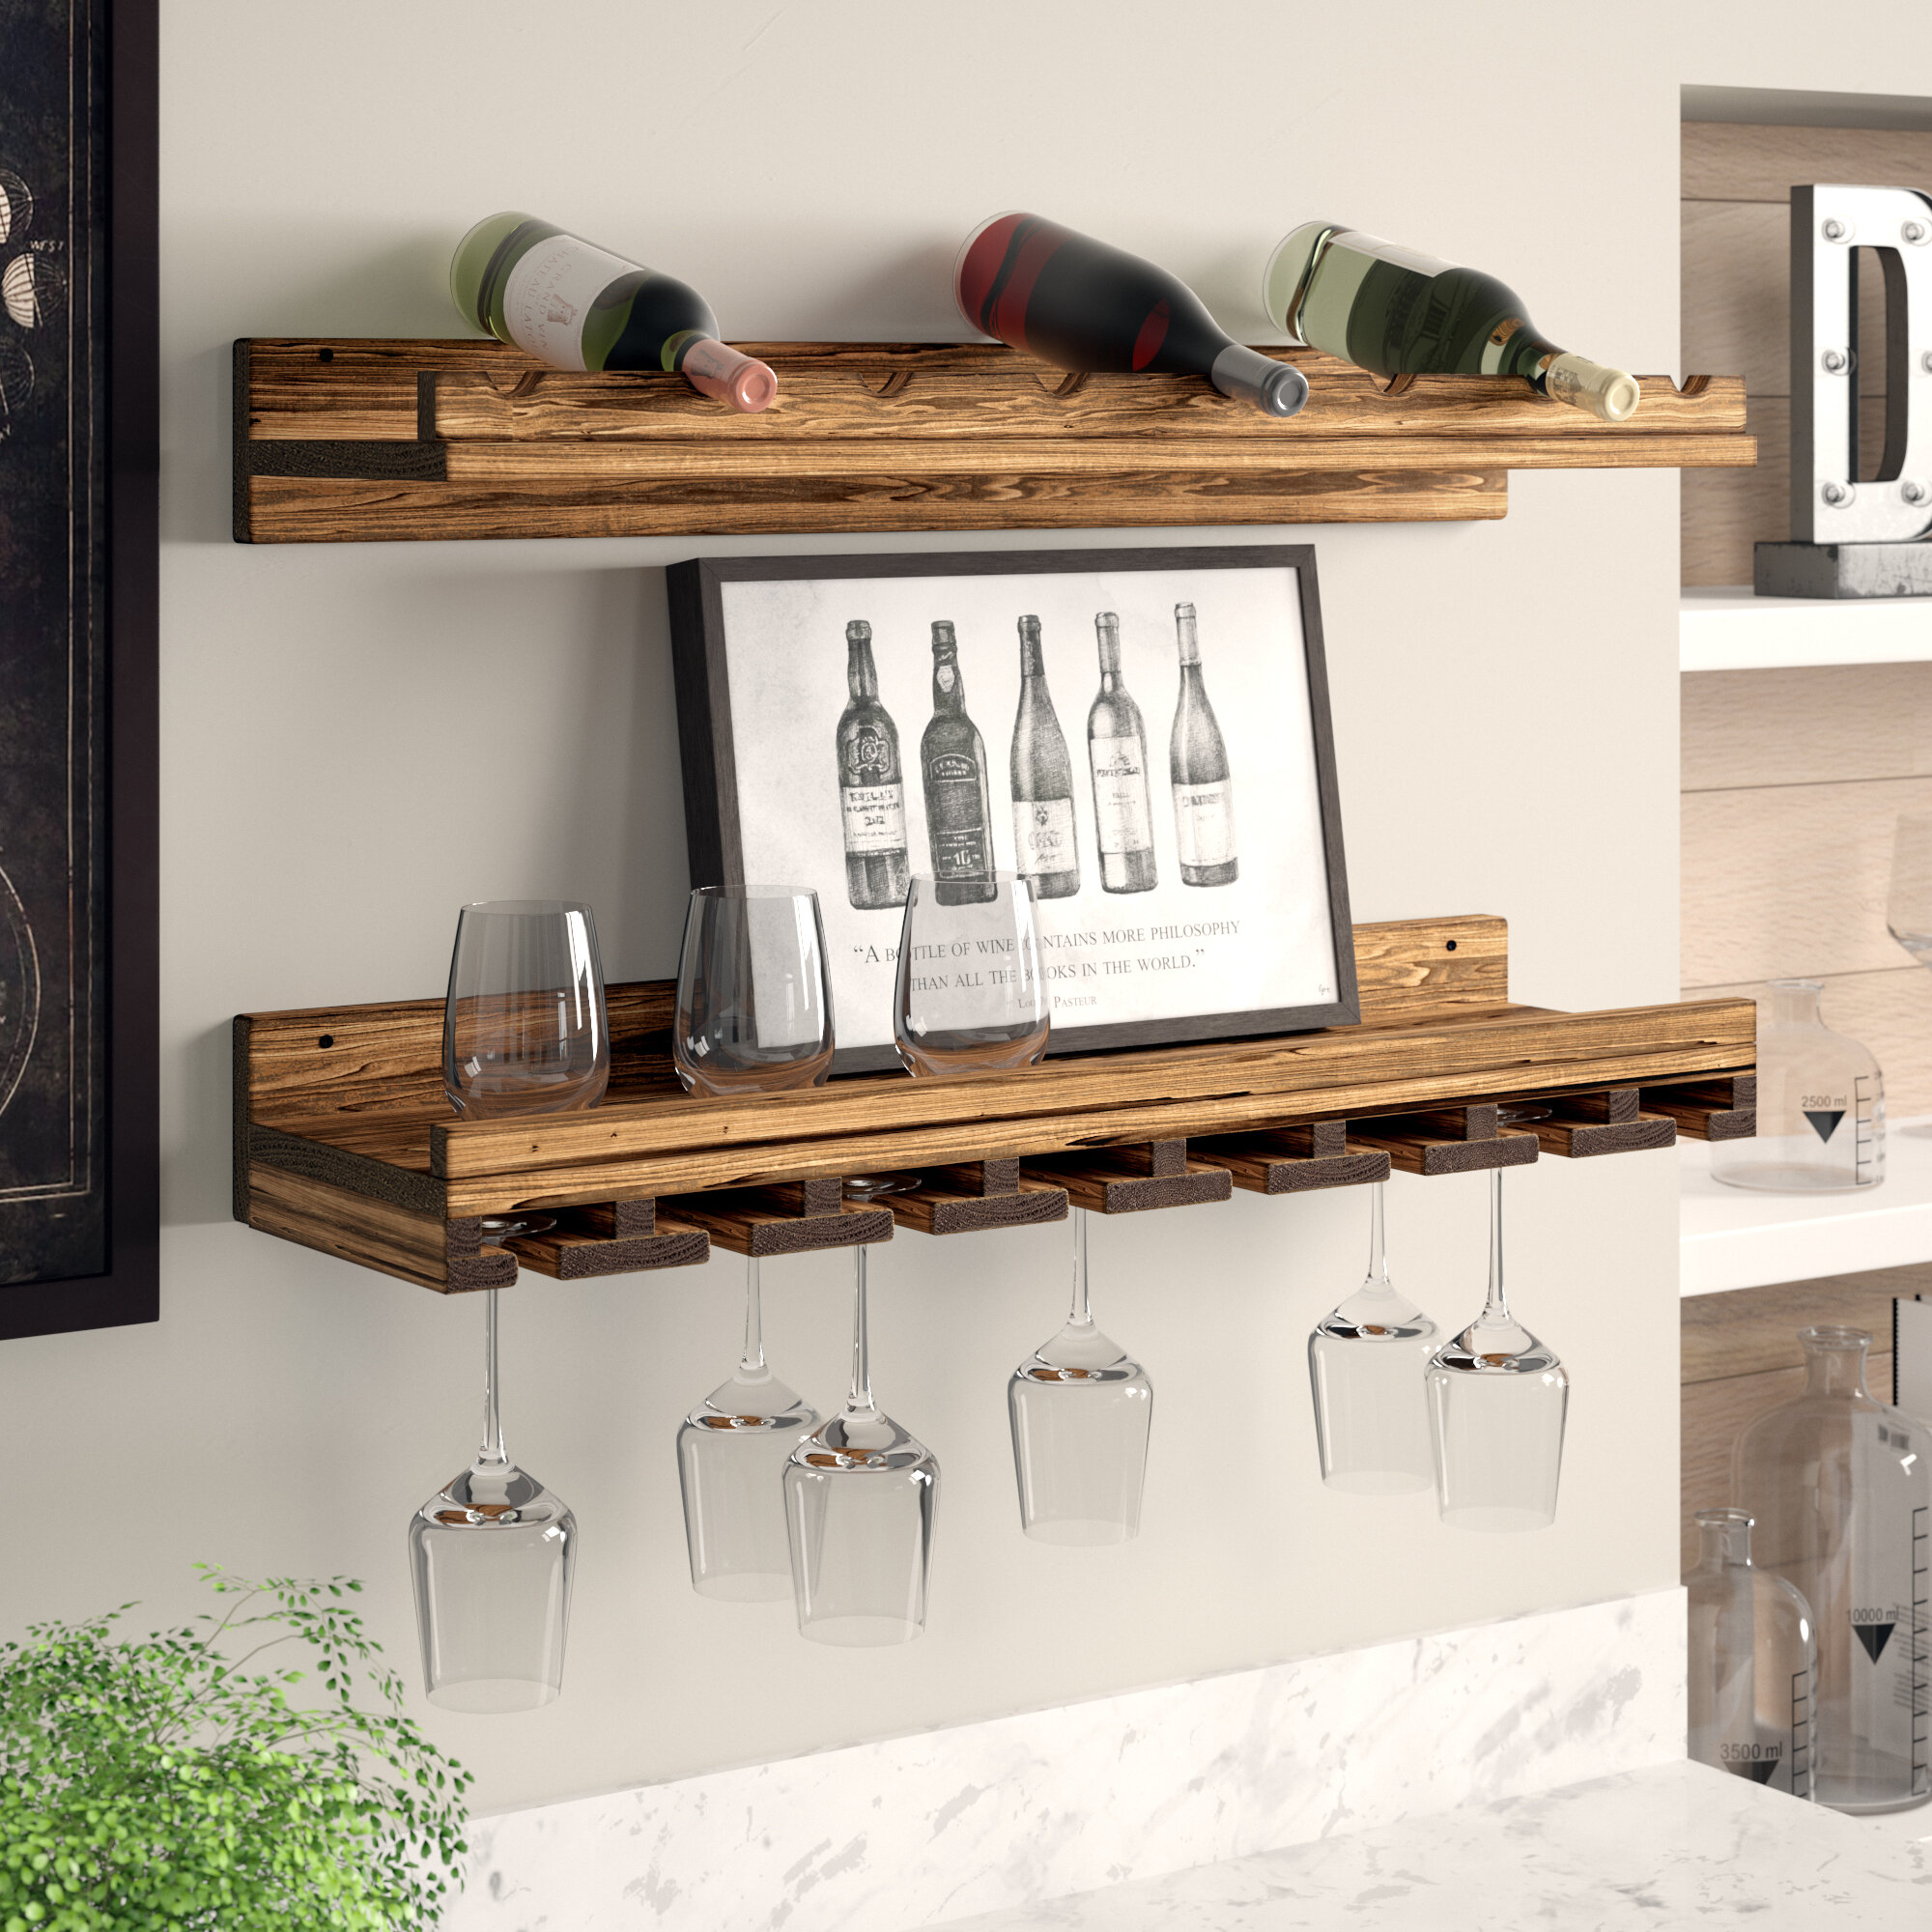 Trent Austin Design Berlyn Solid Wood Wall Mounted Wine Bottle Glass Rack Reviews Wayfair